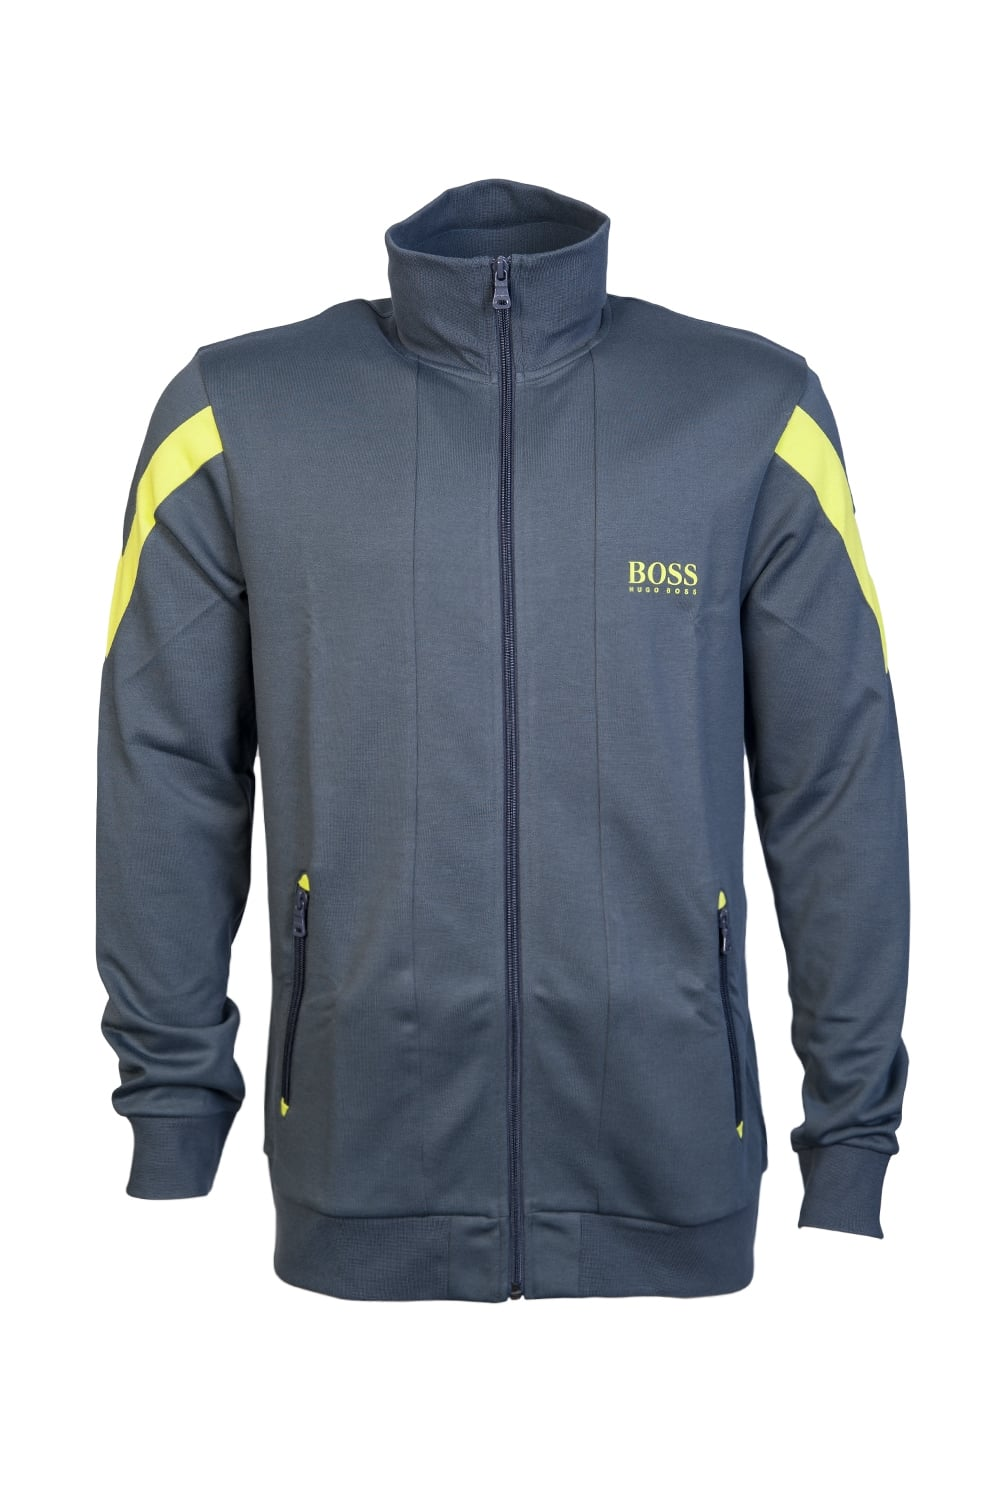 https://linkinggolf.com/ao-golf-nam-hugo-boss-50370144-a398